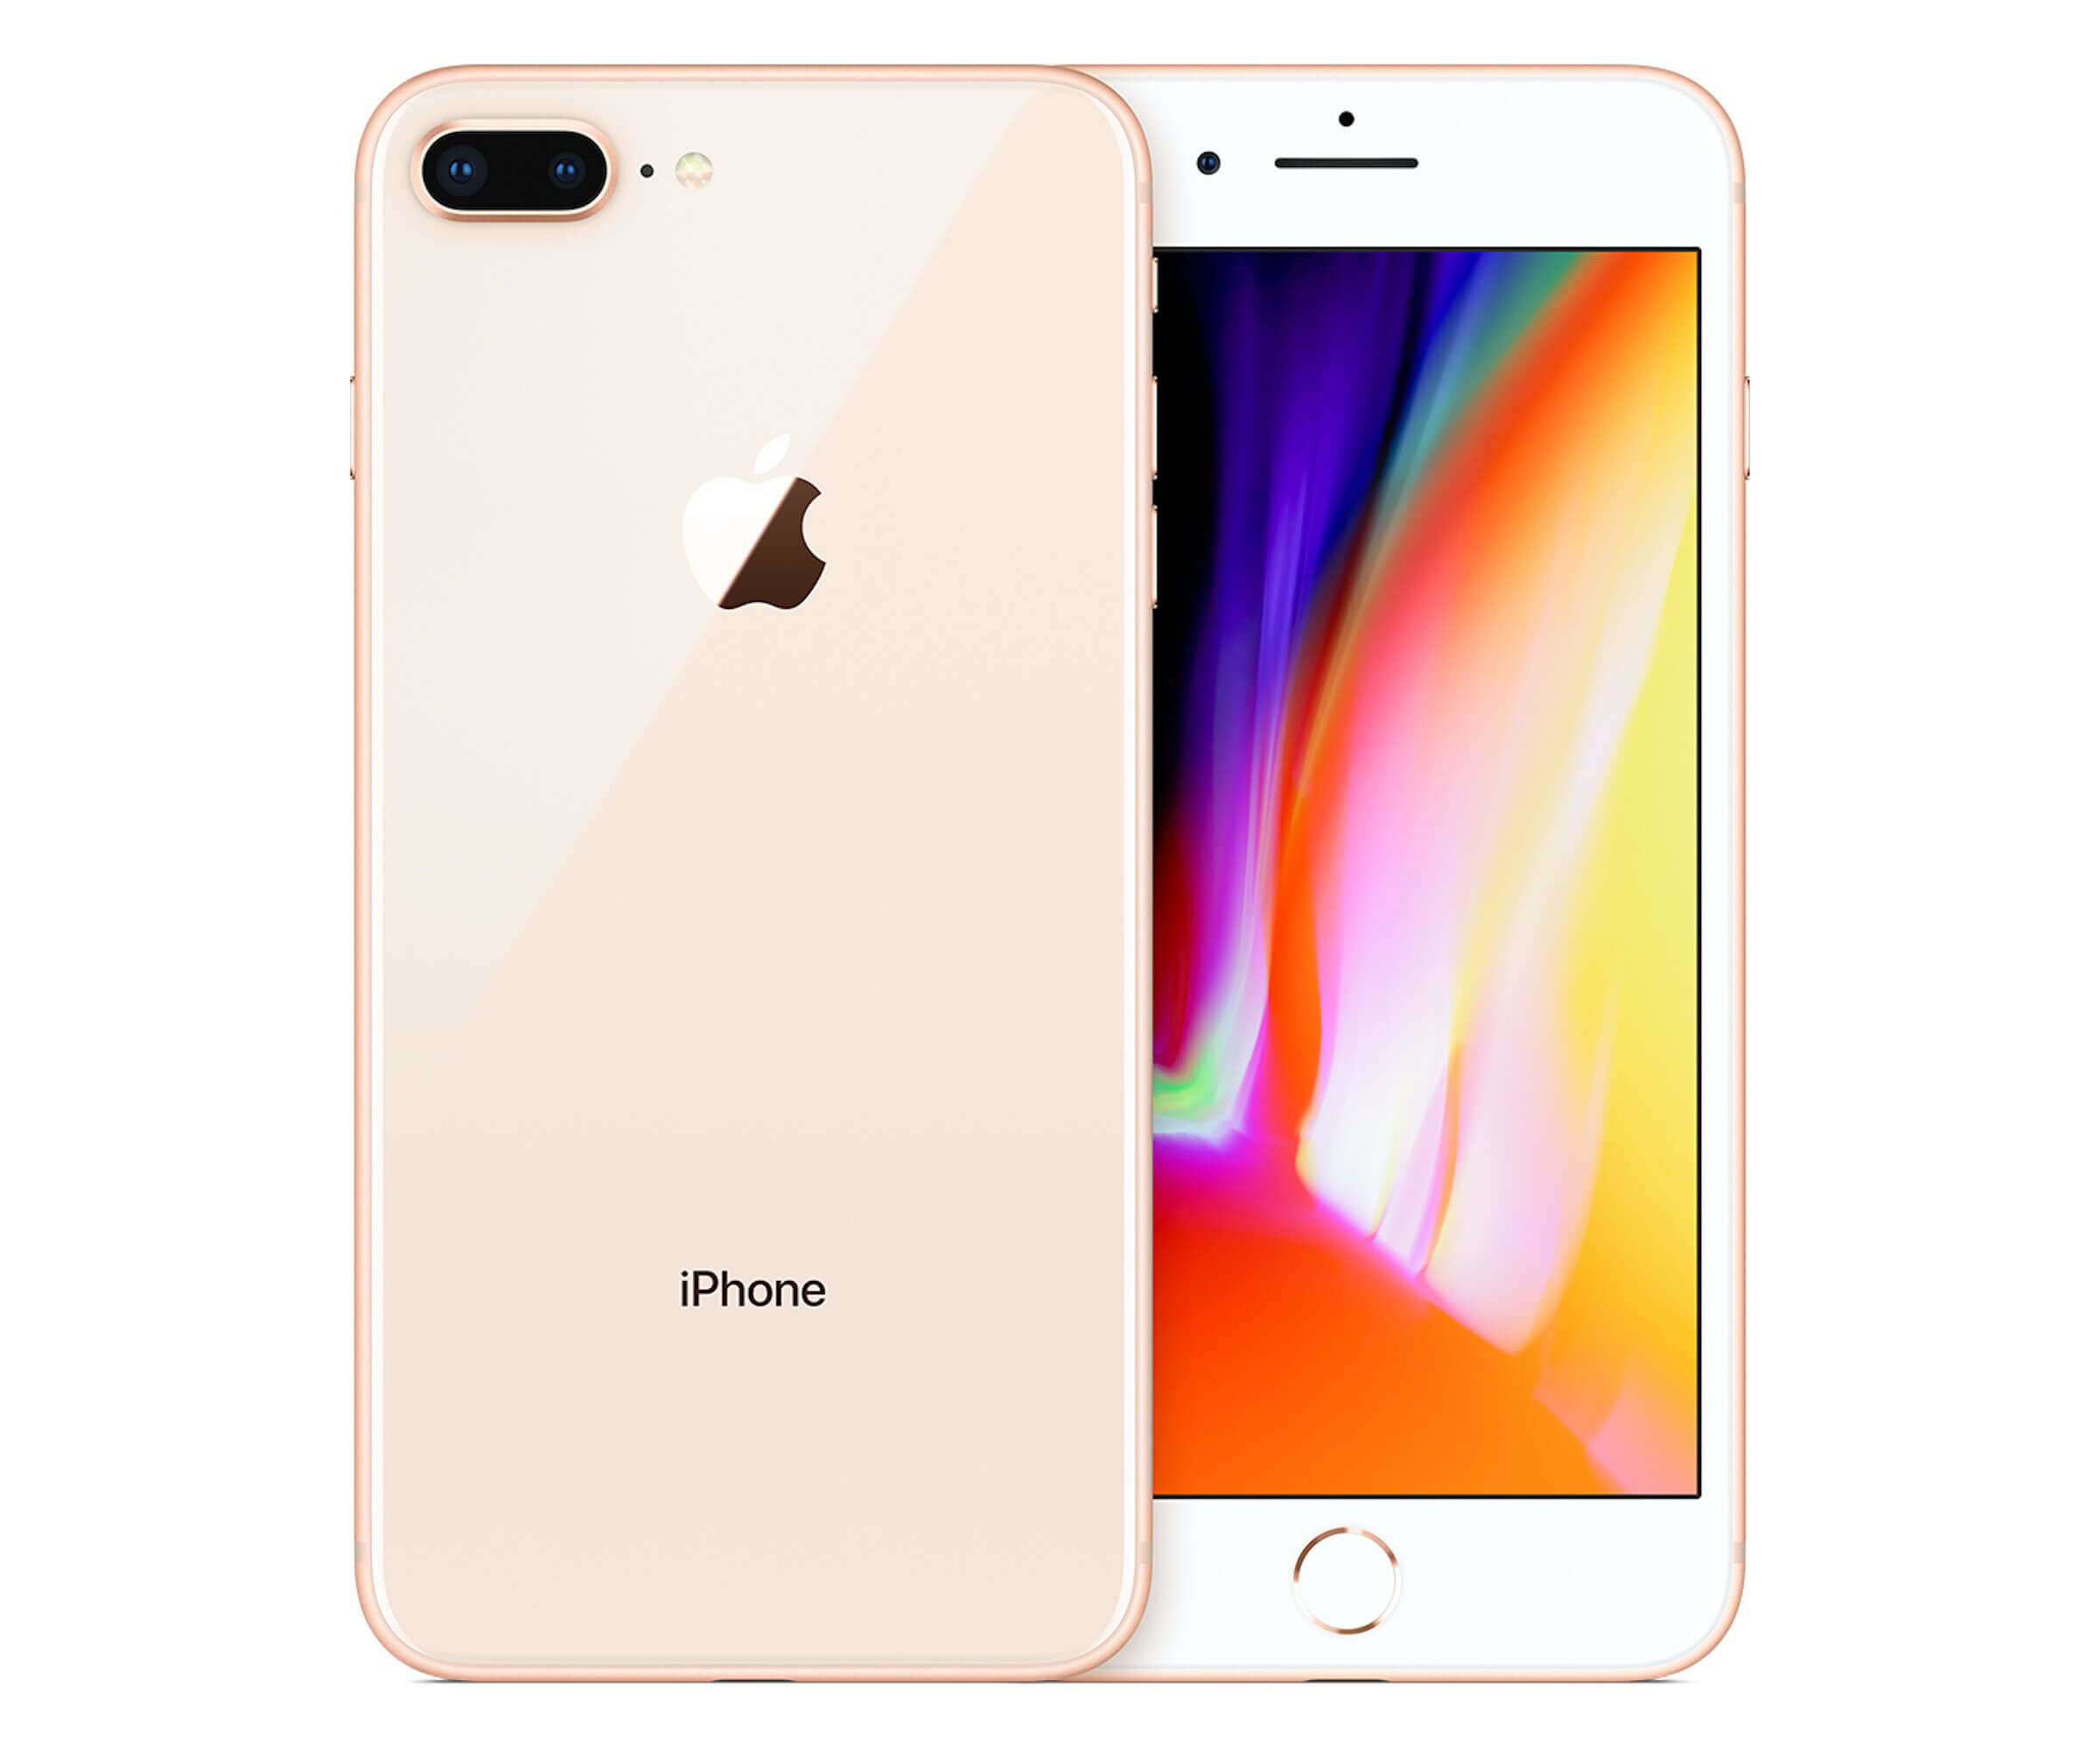 Apple iPhone 8 Plus - Smartphone - 4G LTE Advanced - 64 GB - GSM - 5.5